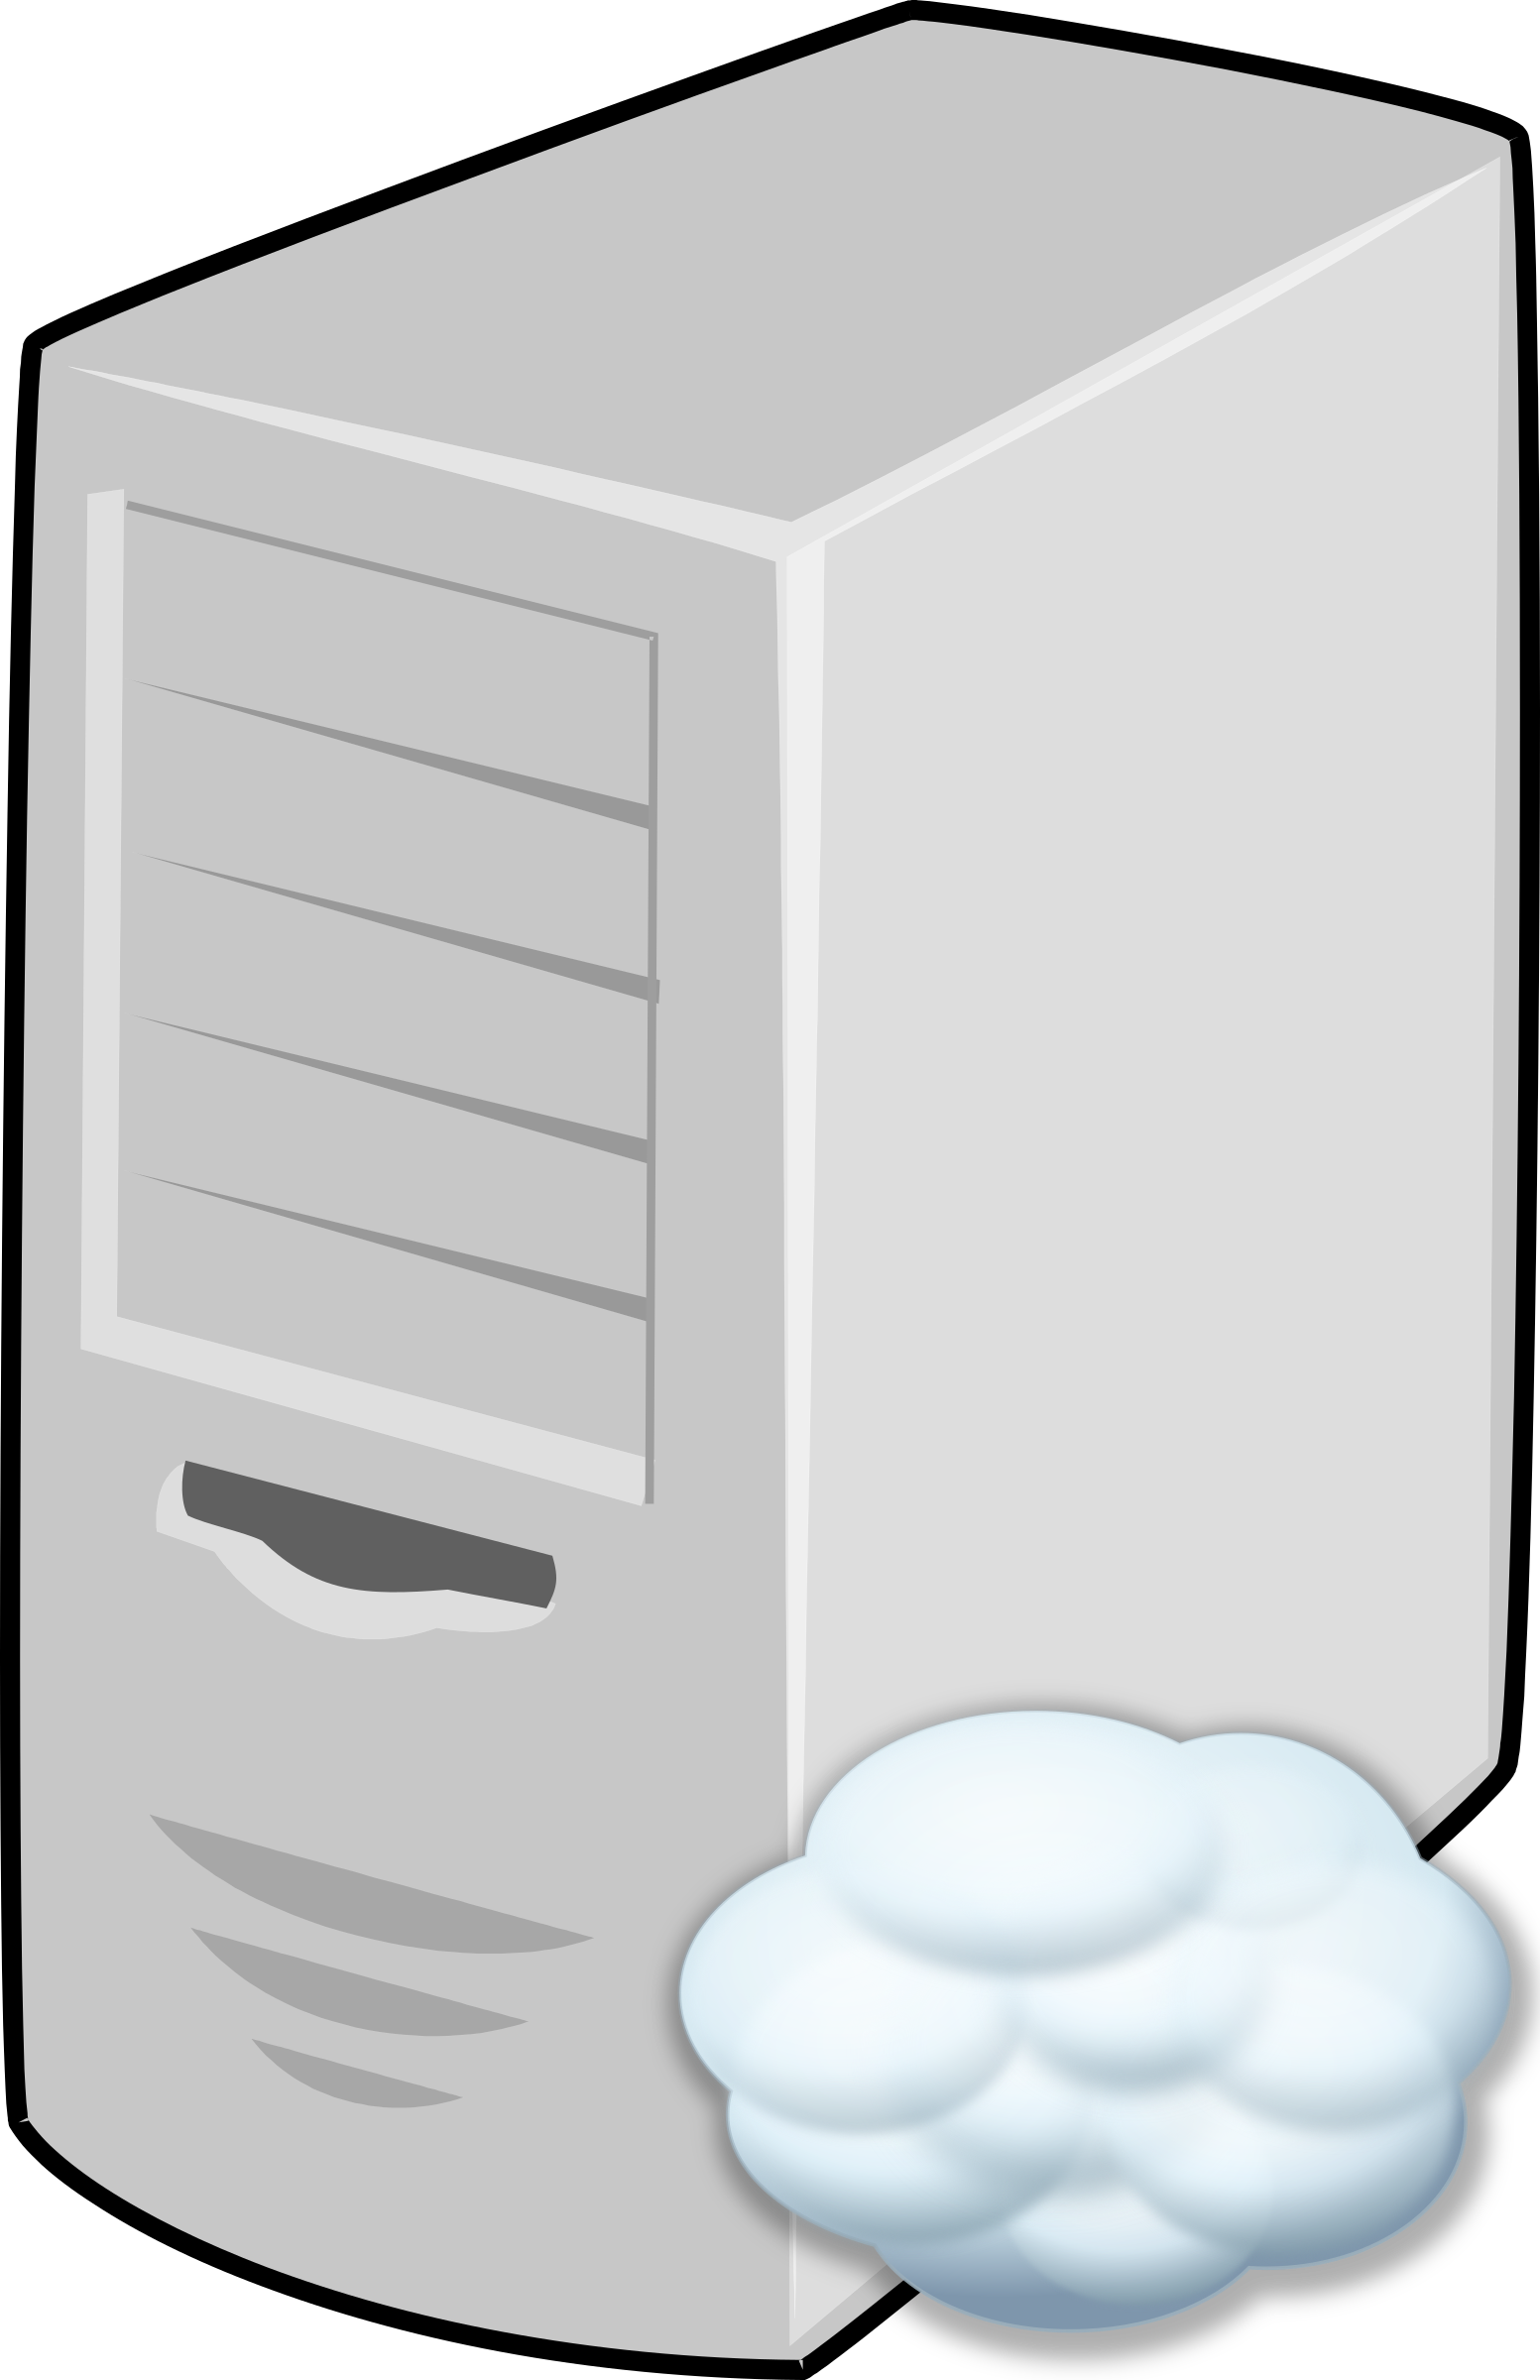 Volleyball clipart server. Cloud big image png